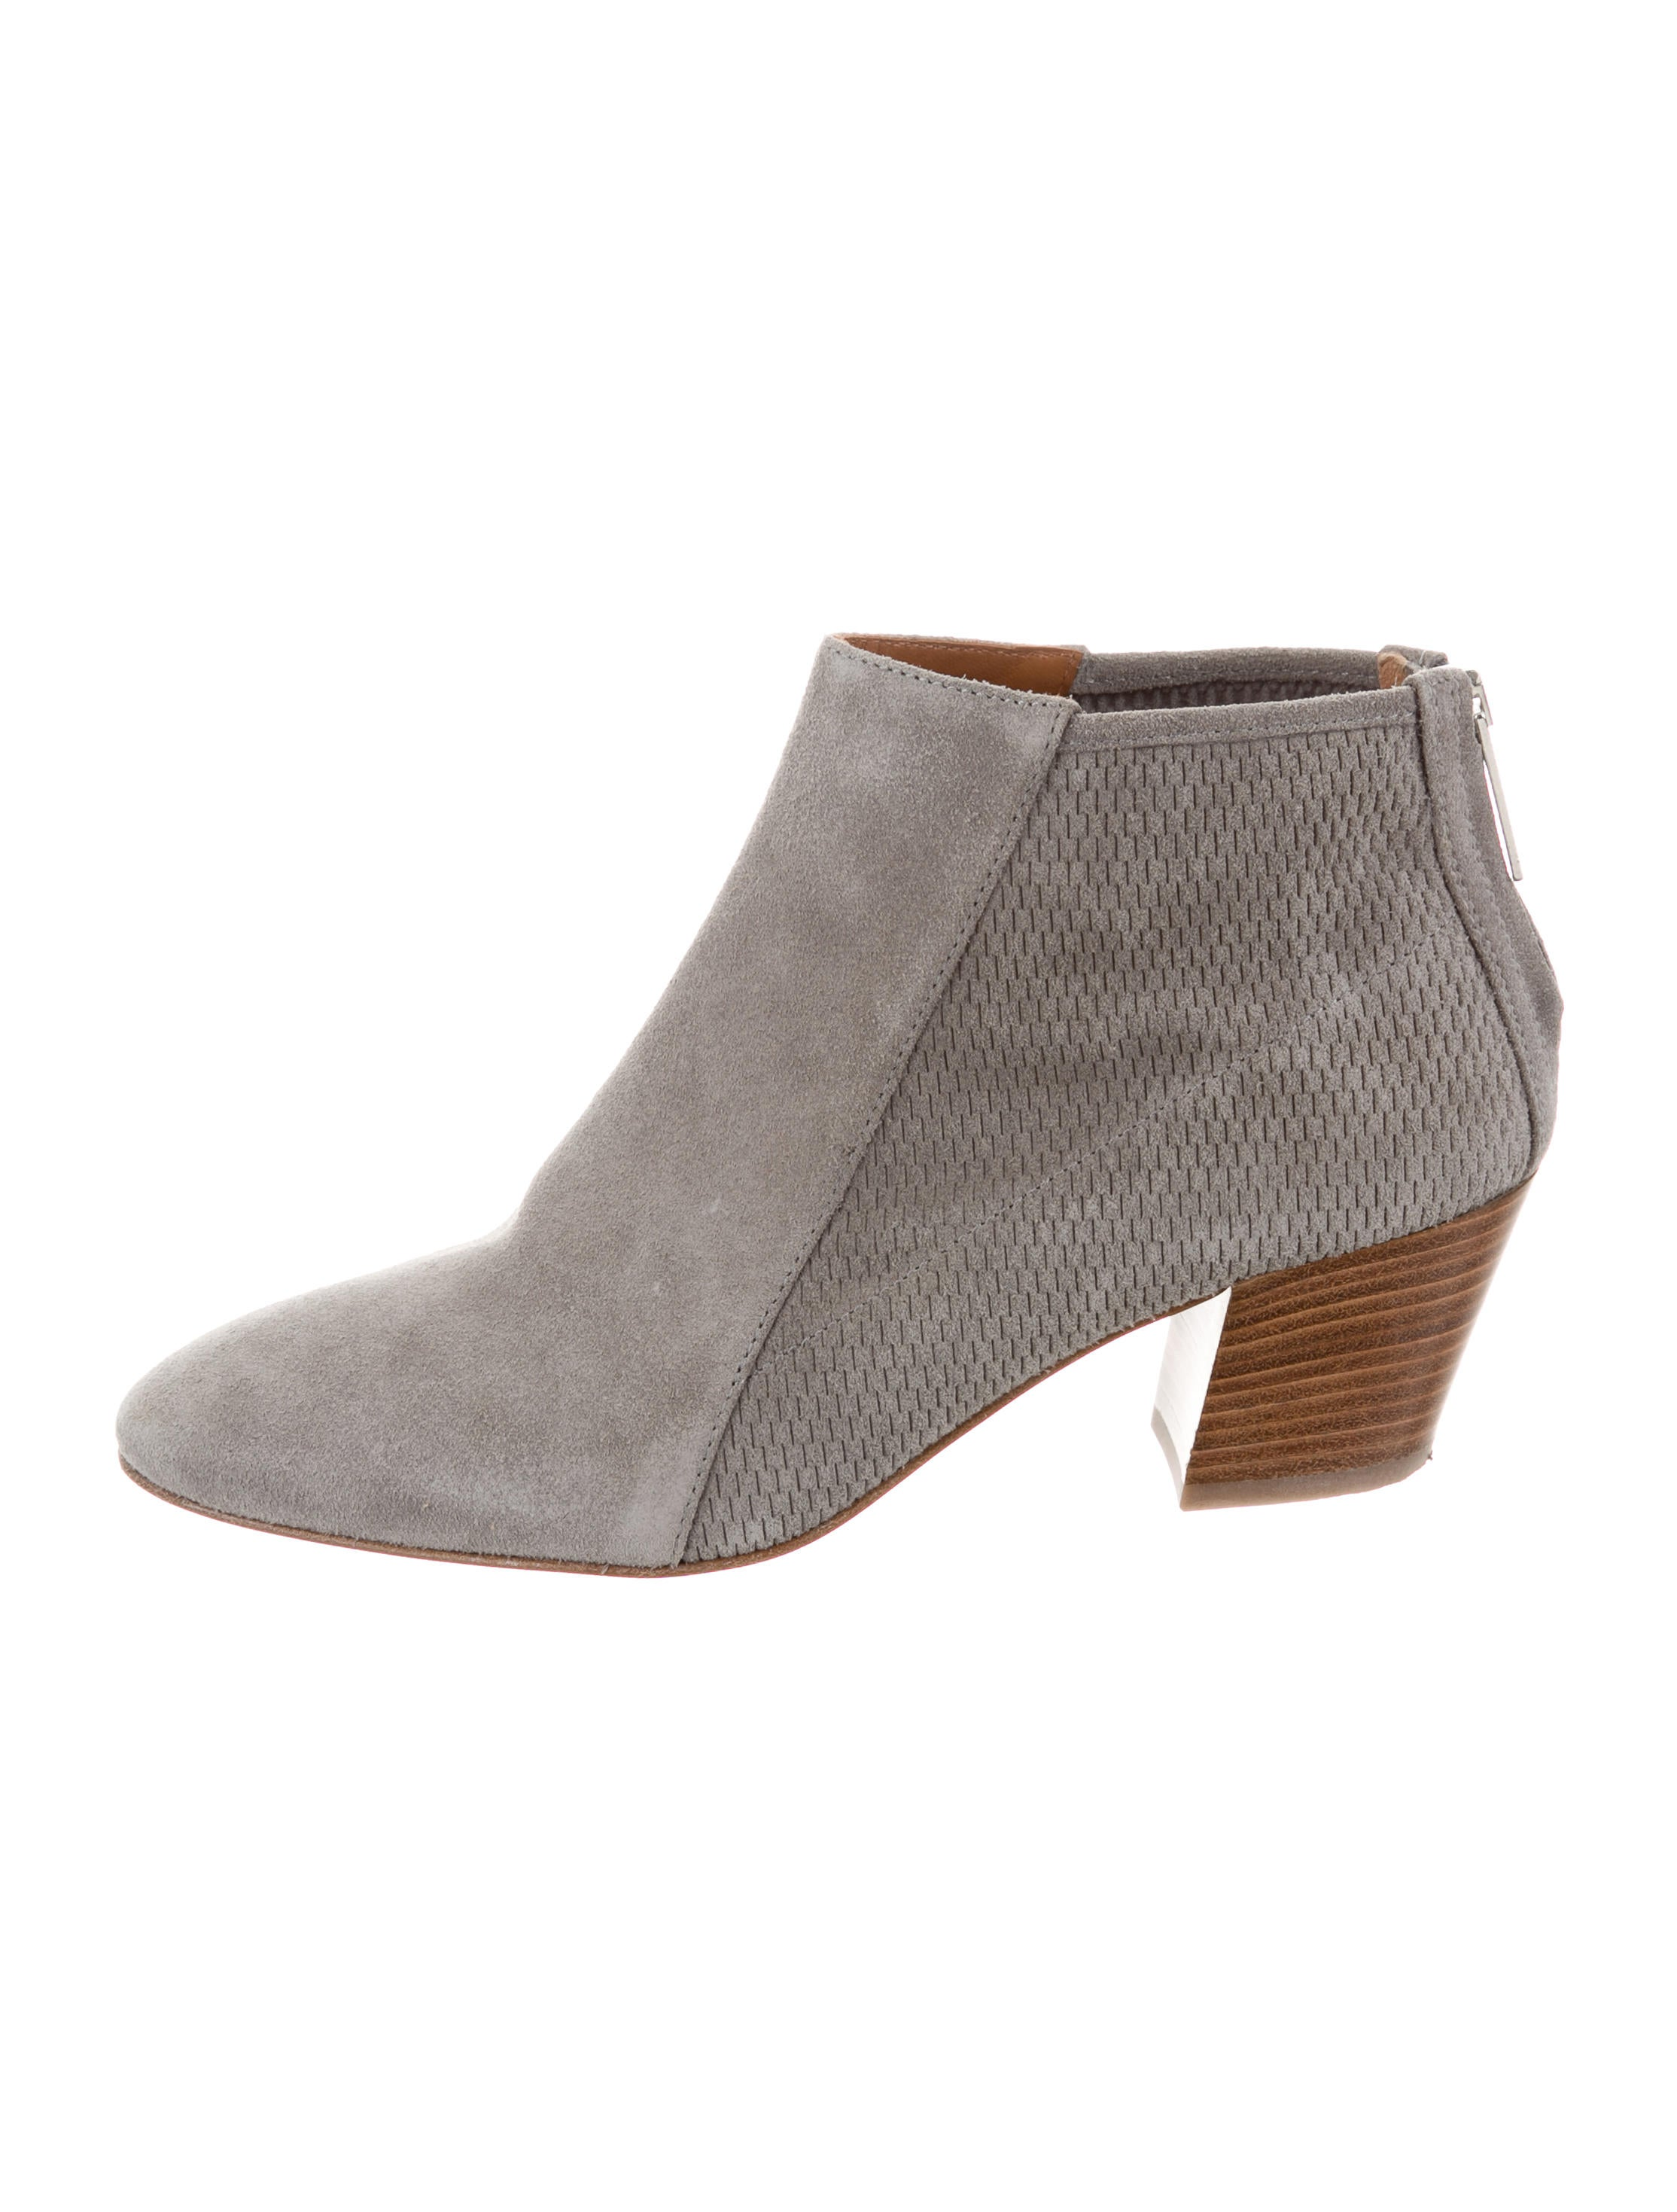 cheap looking for geniue stockist for sale Aquatalia Suede Round-Toe Ankle Boots buy cheap free shipping free shipping visit new wdOYE1